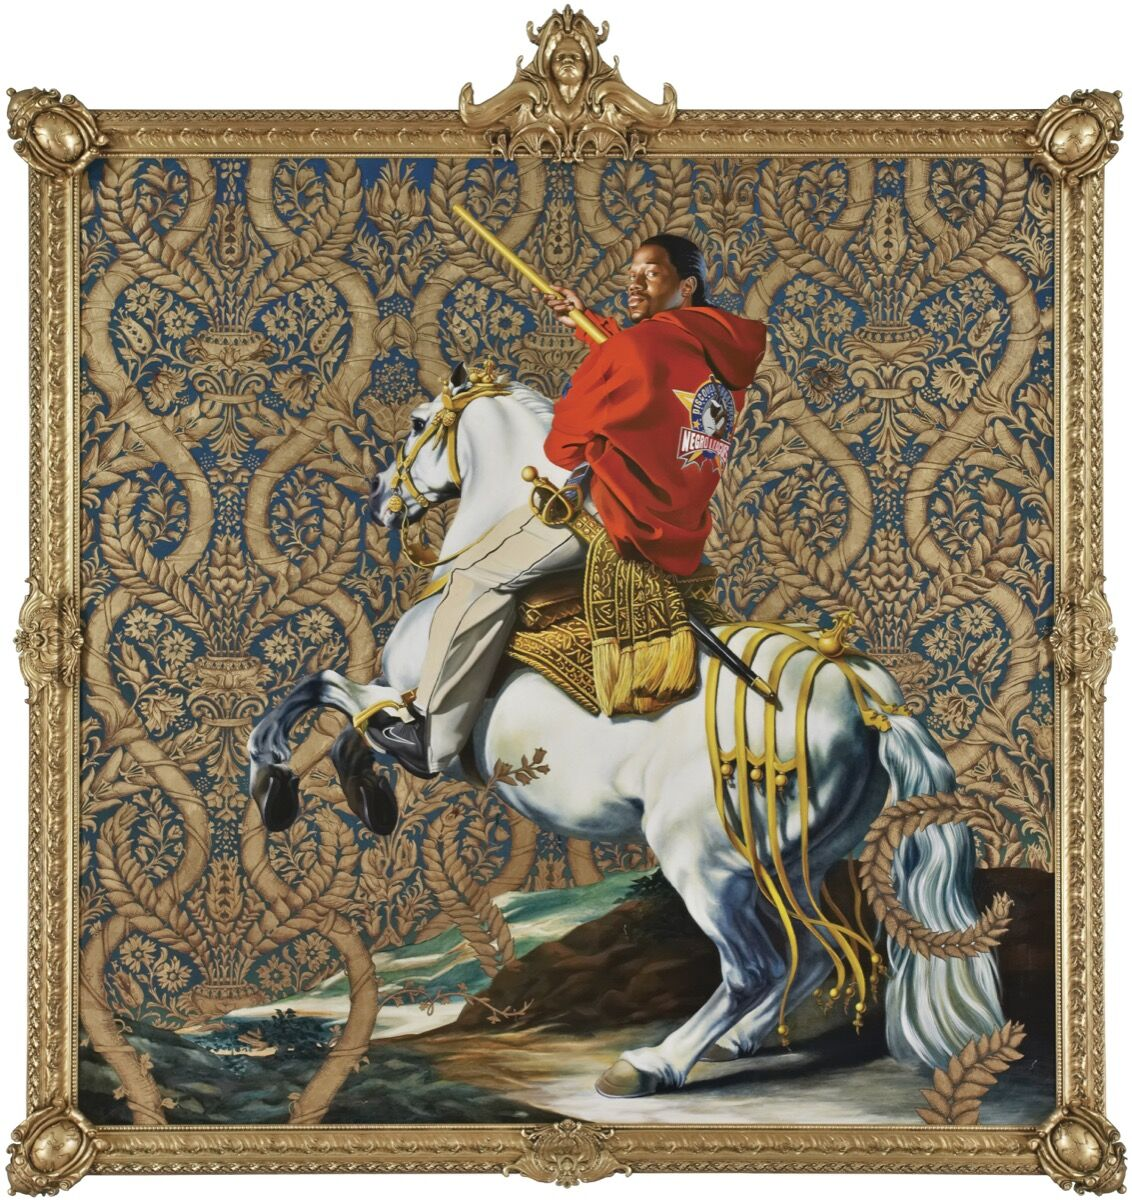 Kehinde Wiley Equestrian Portrait of the Count Duke Olivares, 2005.     Courtesy of Rubell Family Collection, Miami.